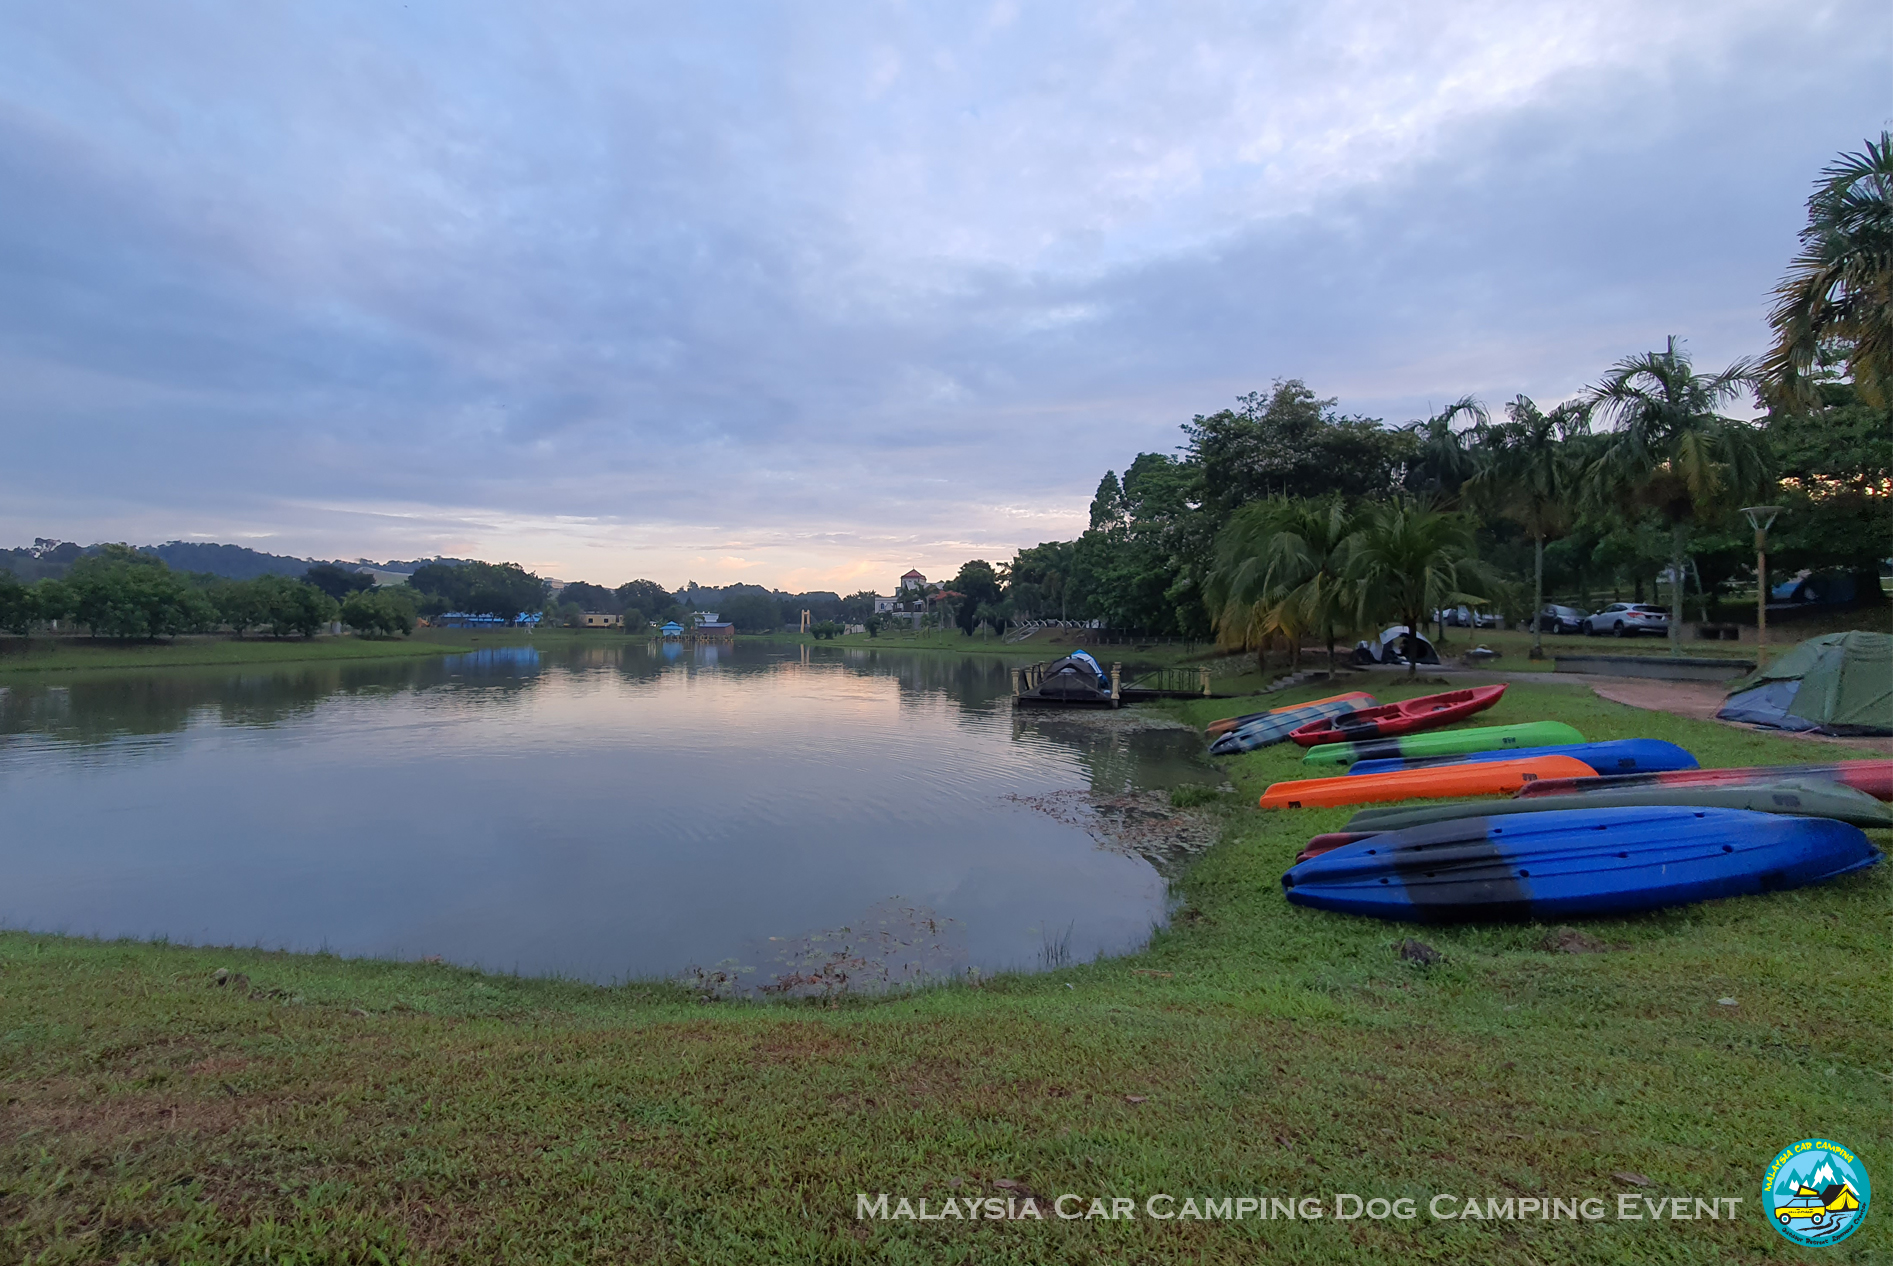 dog_camping_event_selangor_camping_site_malaysia_car_camping_private_event_organizer-6